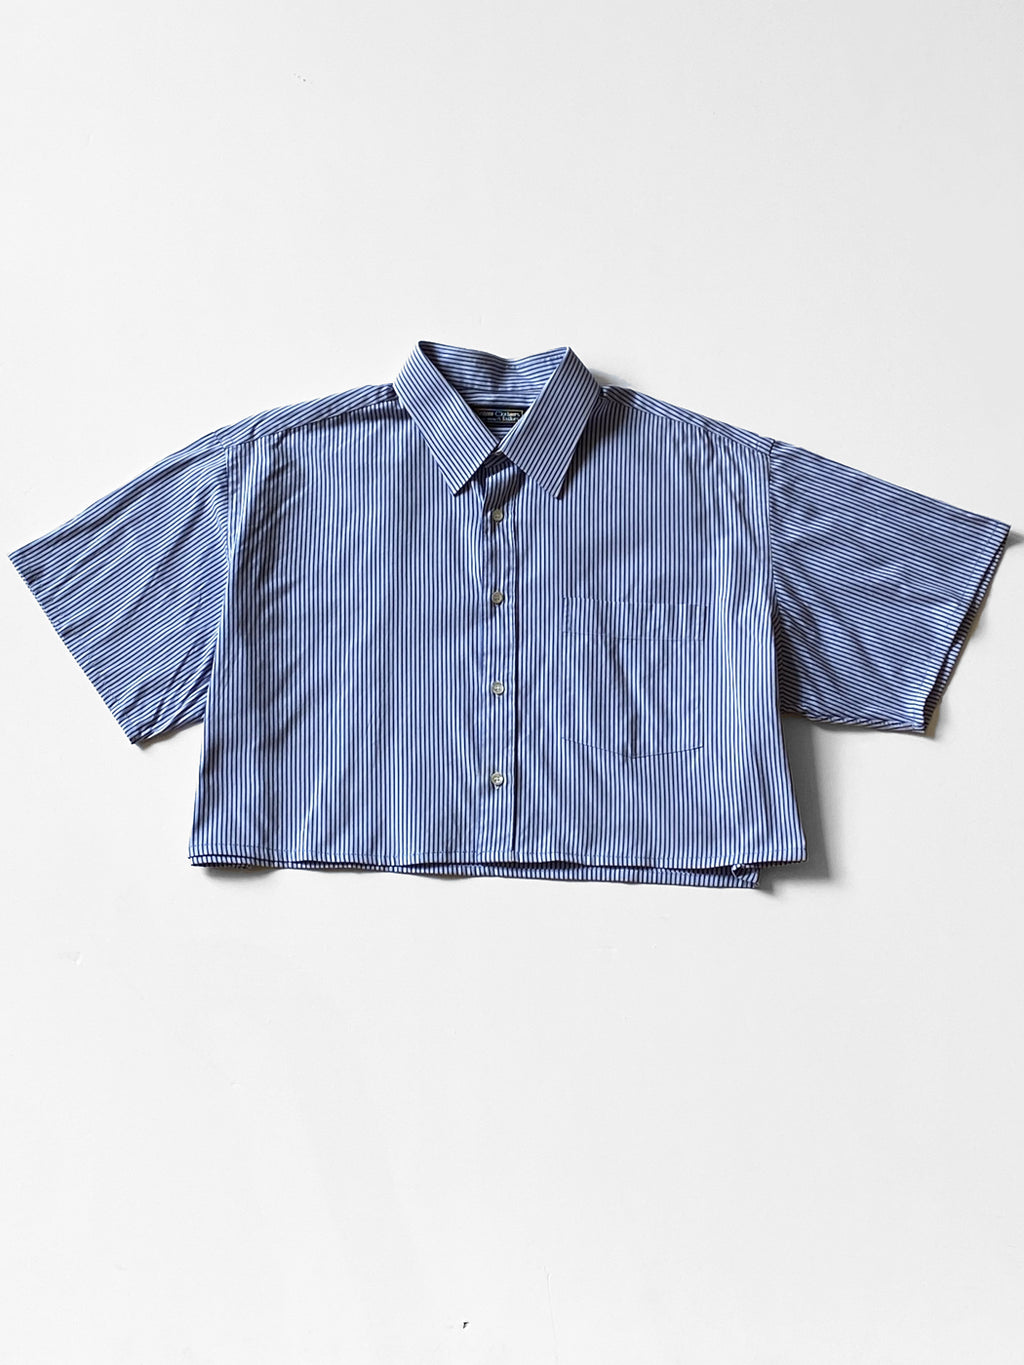 UP by Beth - Reworked Button-Down Shirt  / Cobalt Stripe